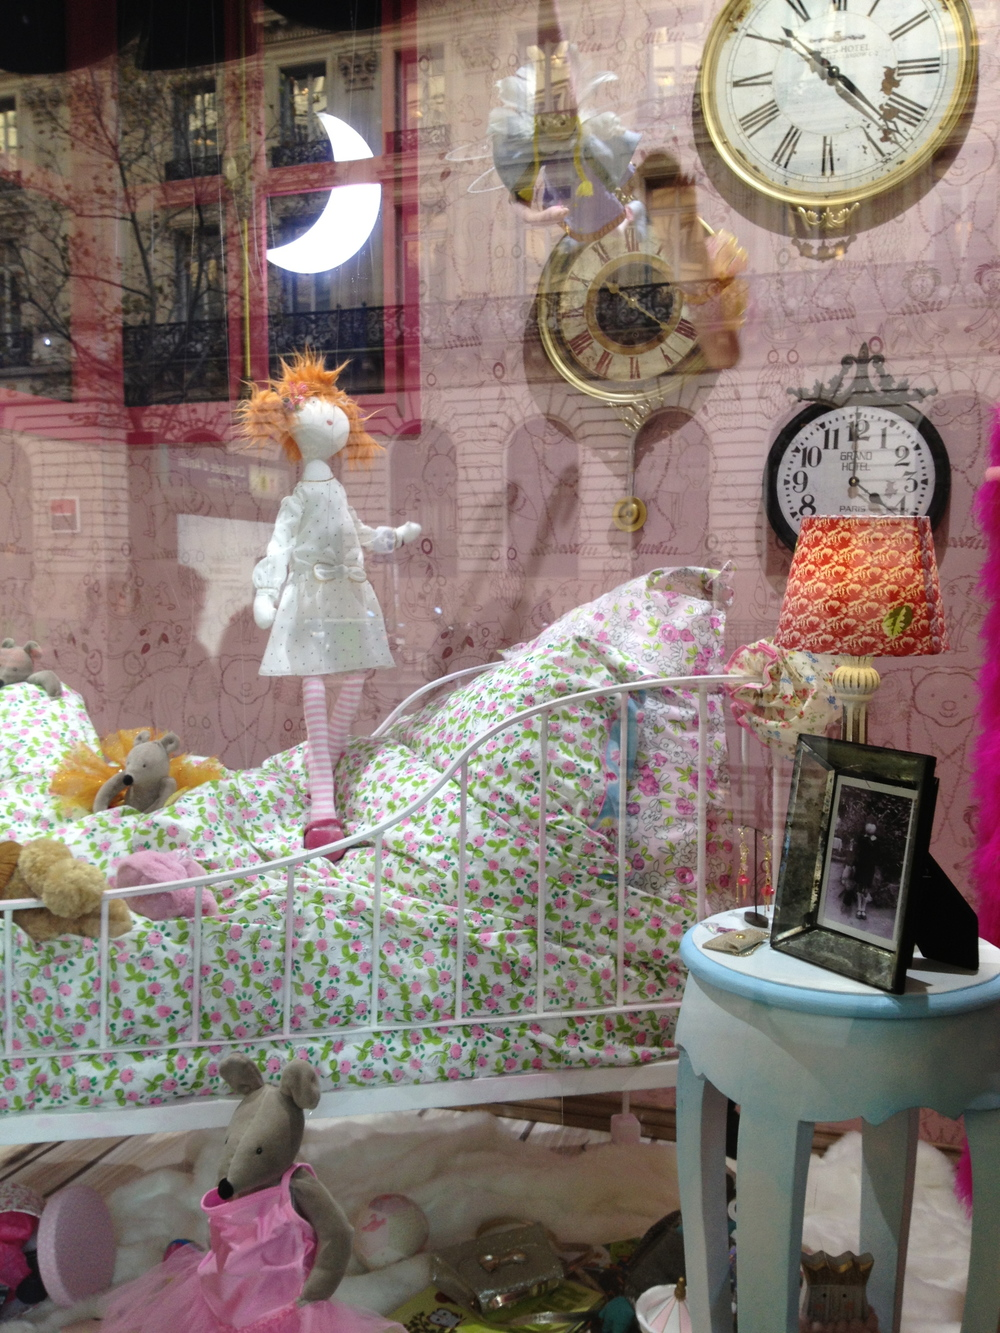 The window displays at Galeries Lafayette were just amazing. Each doll/soft toy was mechanically moving their limbs!